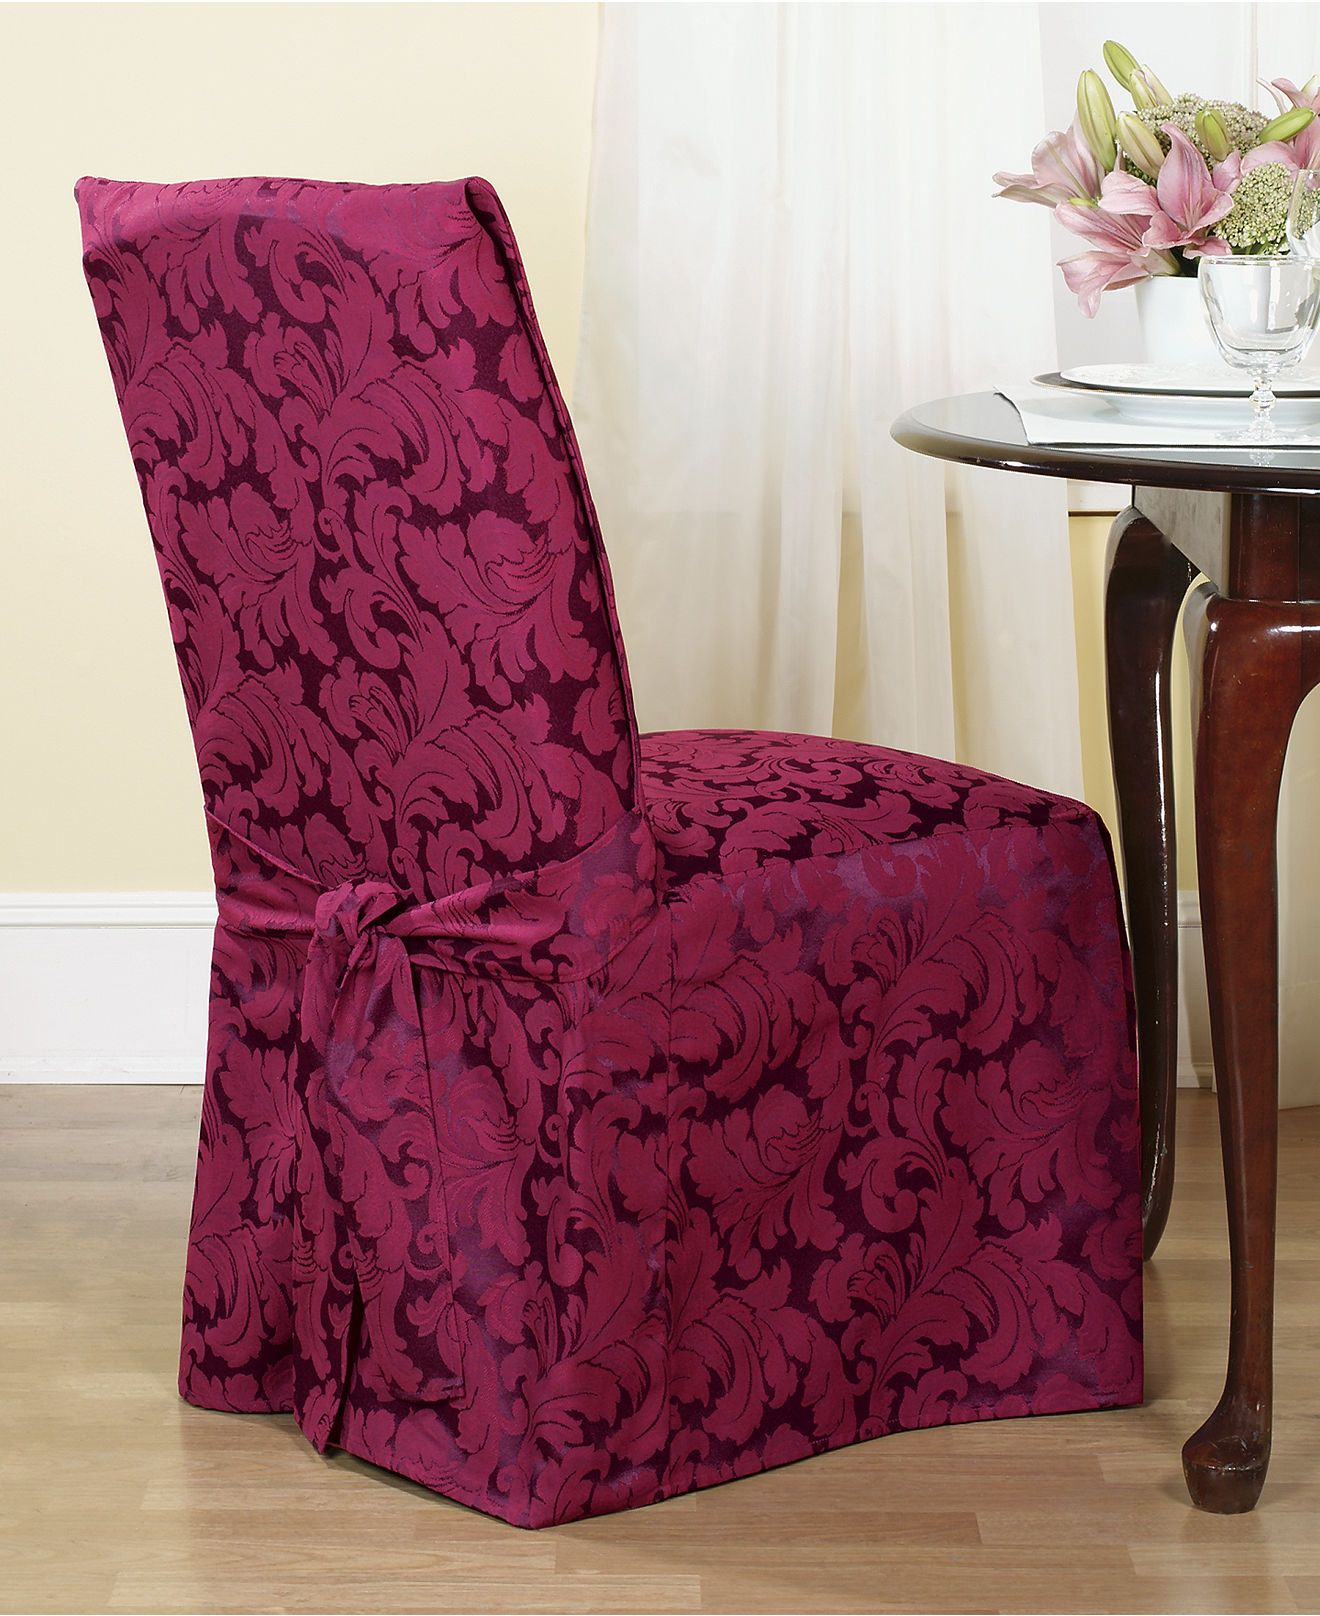 Dining Room Chair Cushion Covers: Scroll Dining Room Chair Slipcover